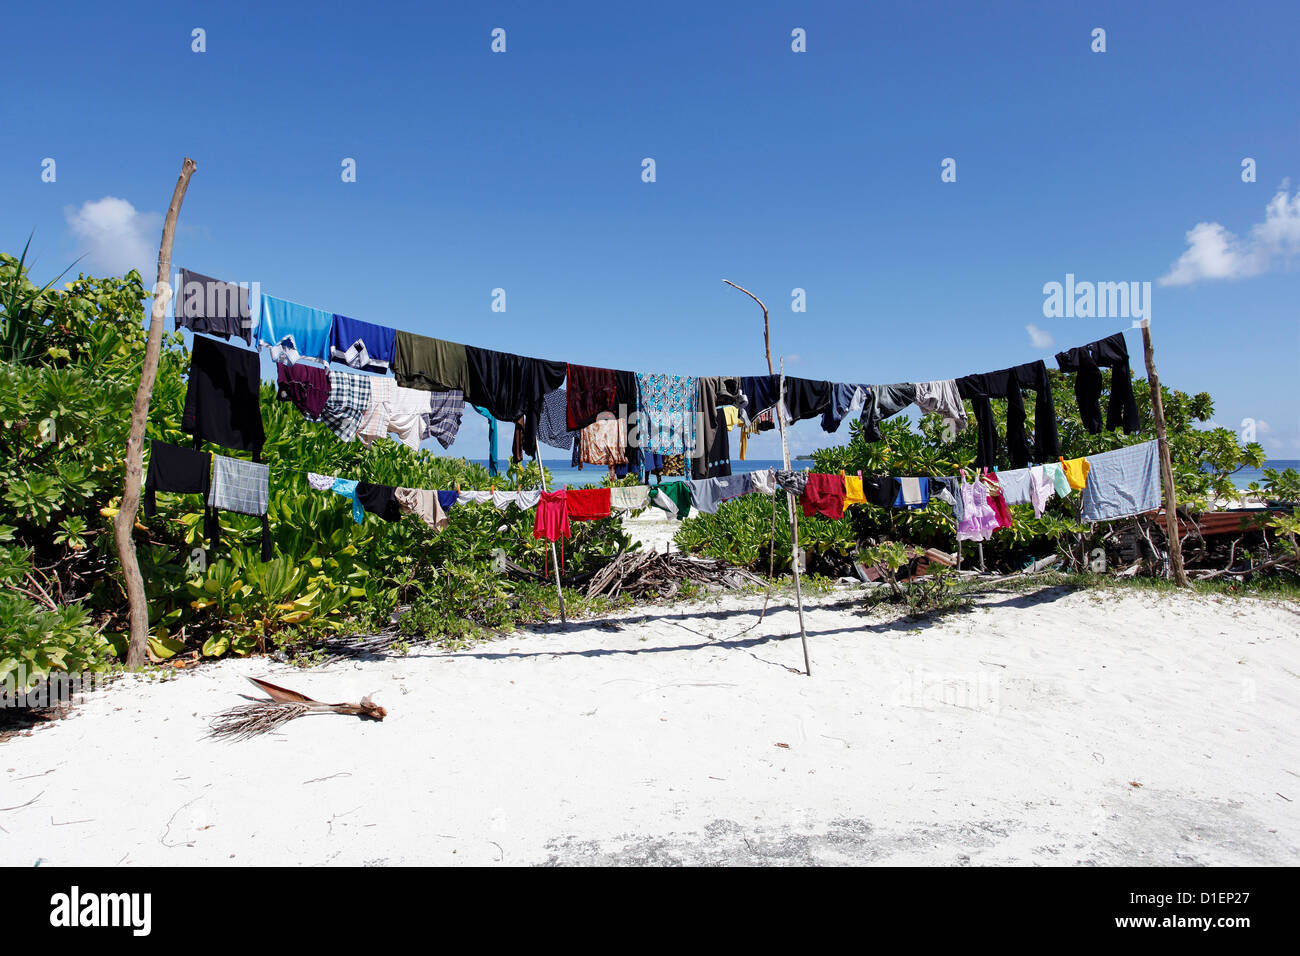 Clothesline on the beach of the Baa Atoll, Maldives - Stock Image